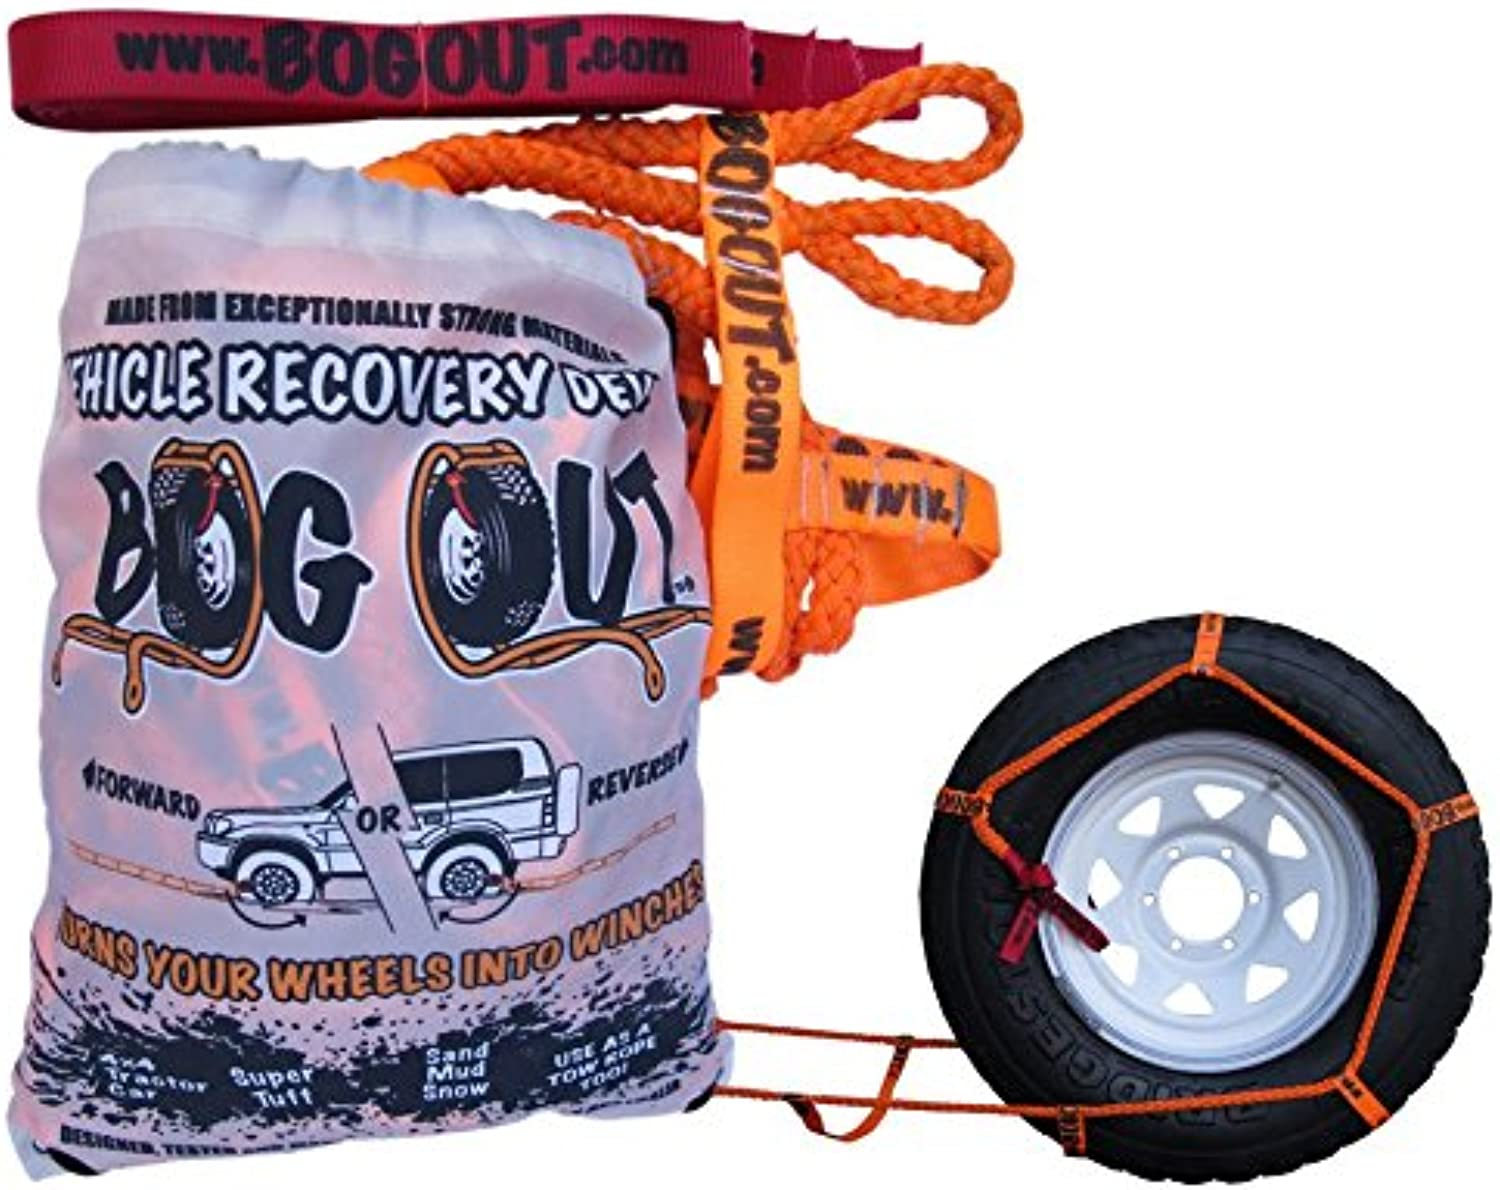 BOG OUT Twin Pack  COMPLETE Vehicle Recovery Kit  Twin Pack TURNS WHEELS INTO WINCHES  Mud, Sand & Snow WORKS Forwards AND Reverse Vehicle Recovery